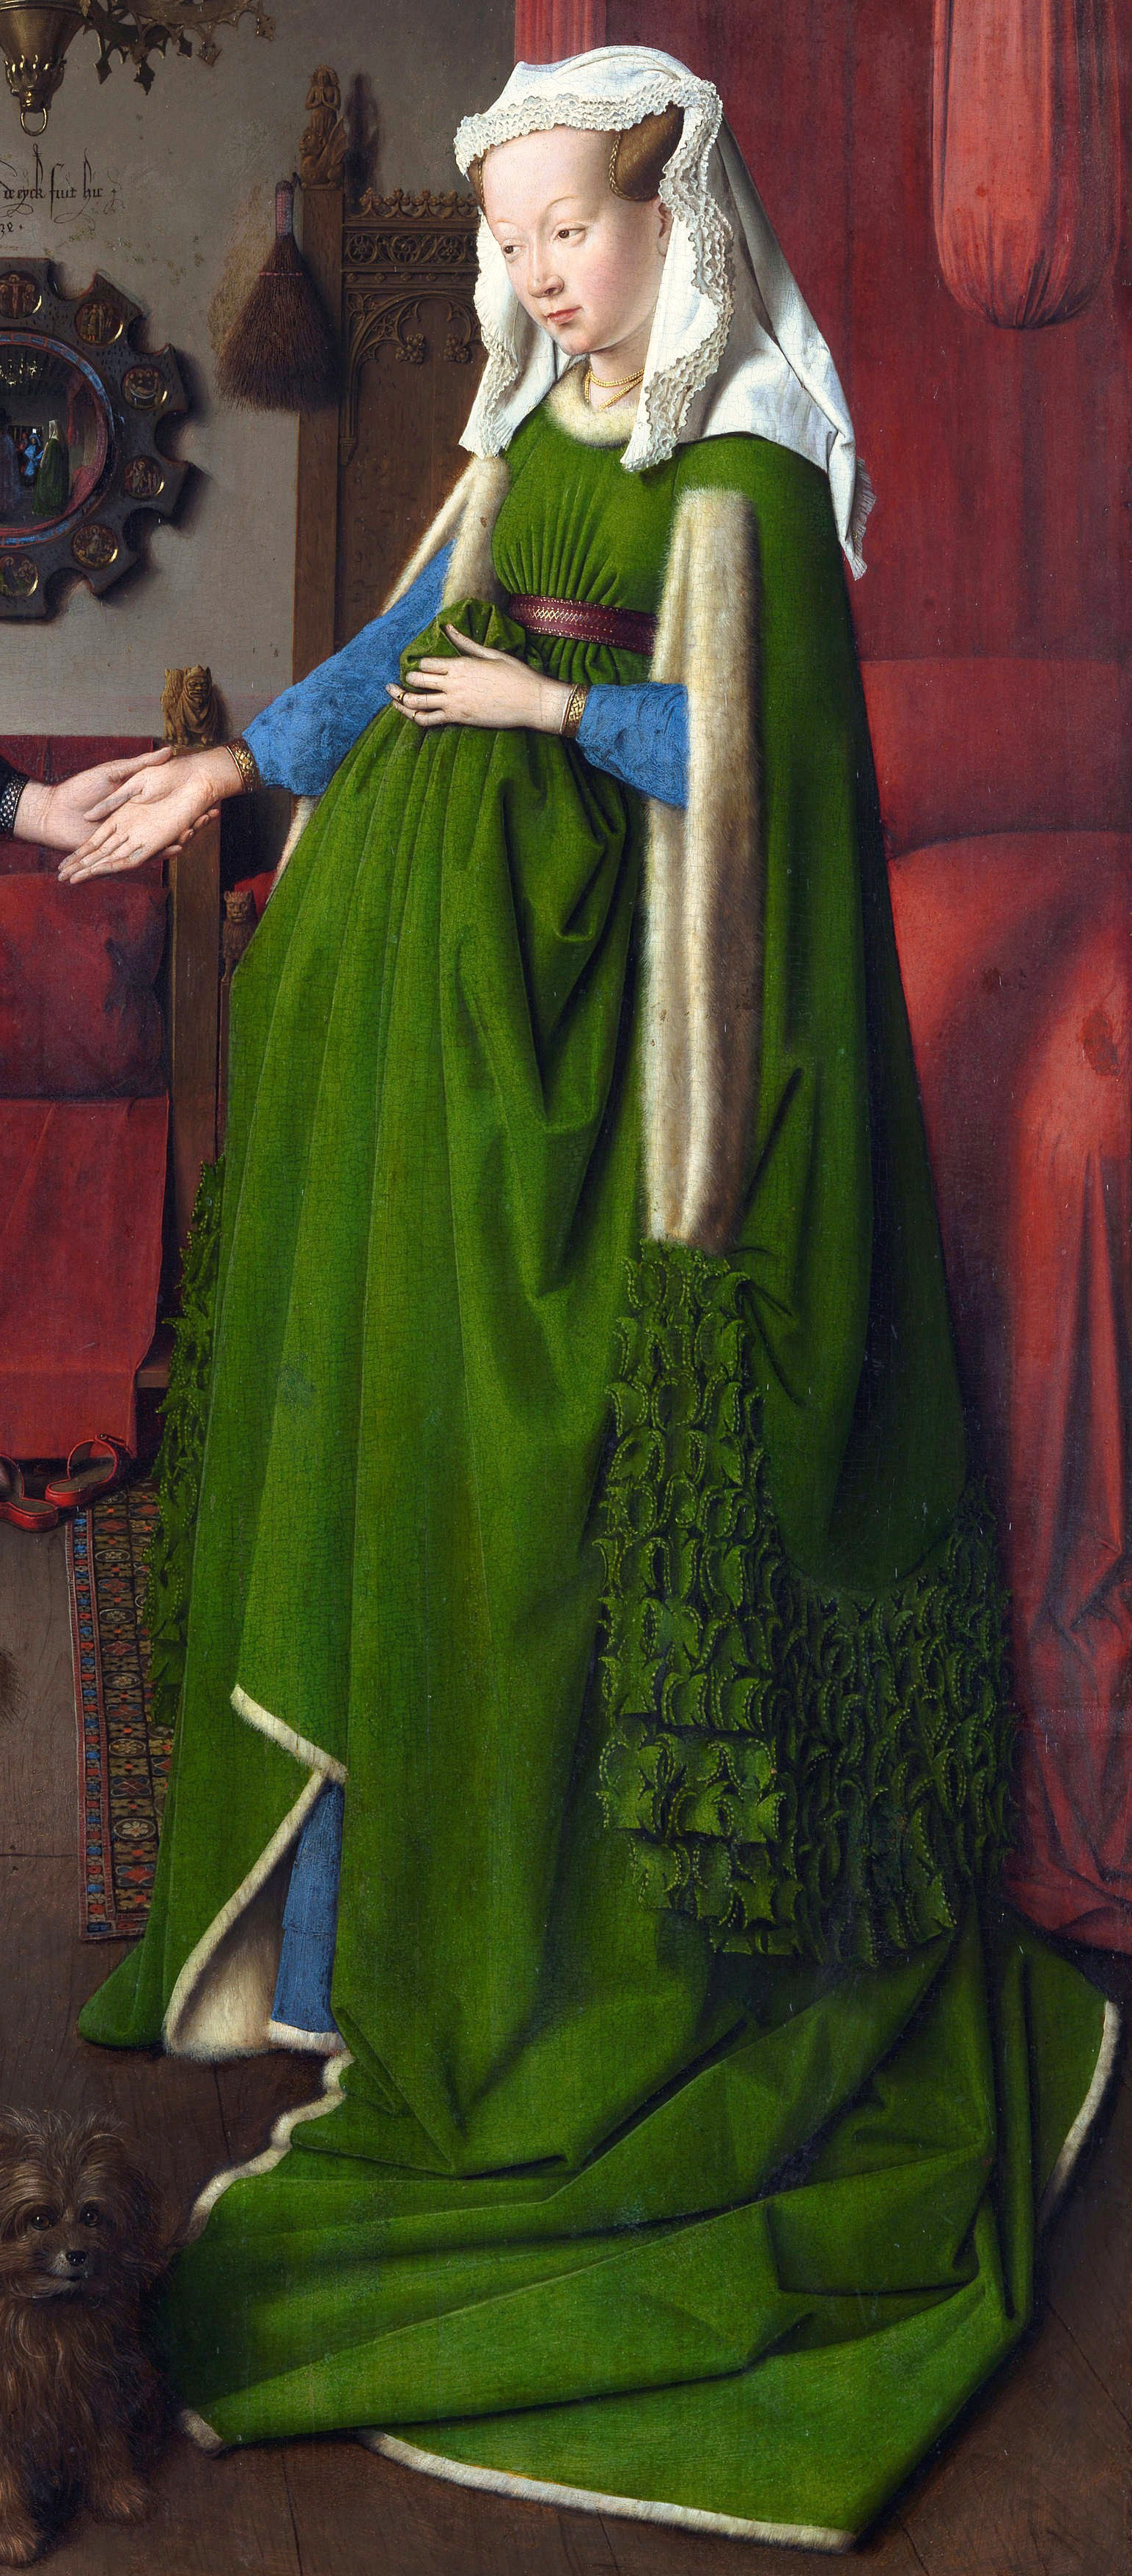 arnolfini wedding portrai 2013-06-17 the arnolfini portrait- jan van eyck context subject the painting is thought to be of giovanni di nicolao arnolfini, a merchant in belgium and his wife the setting of the painting is a well-appointed room, implying a level of.